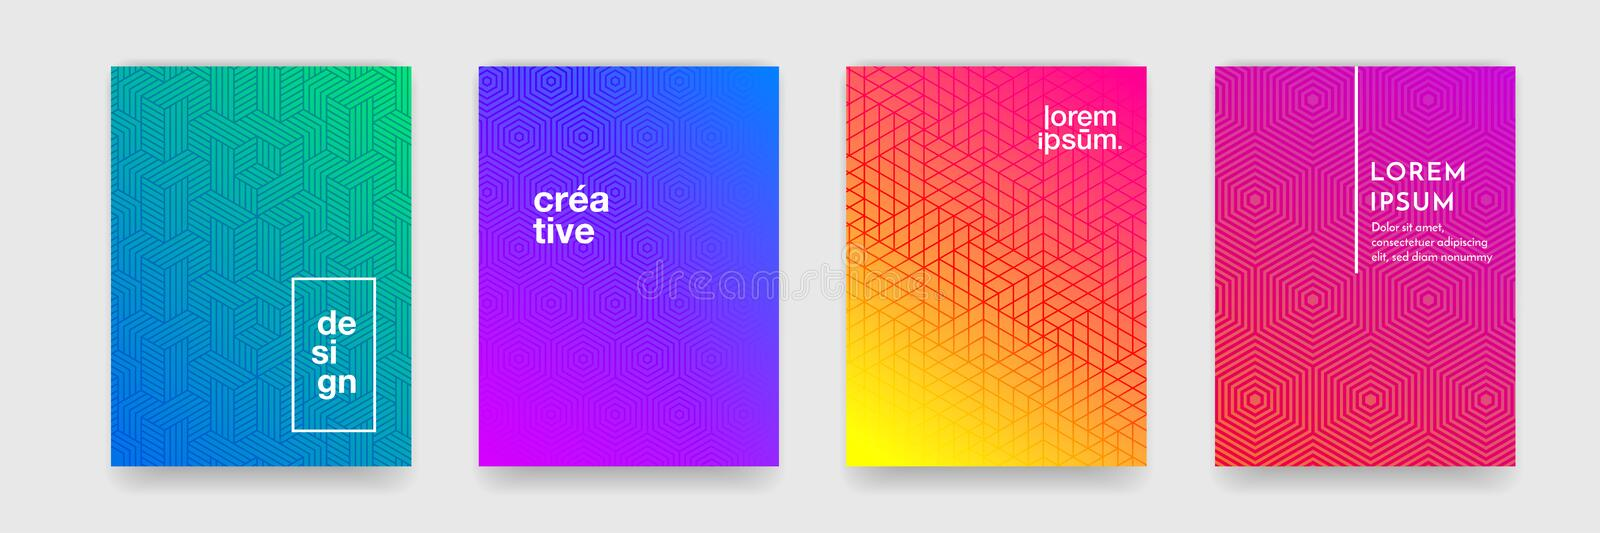 Abstract geometric pattern background with line texture for business brochure cover design poster template vector illustration